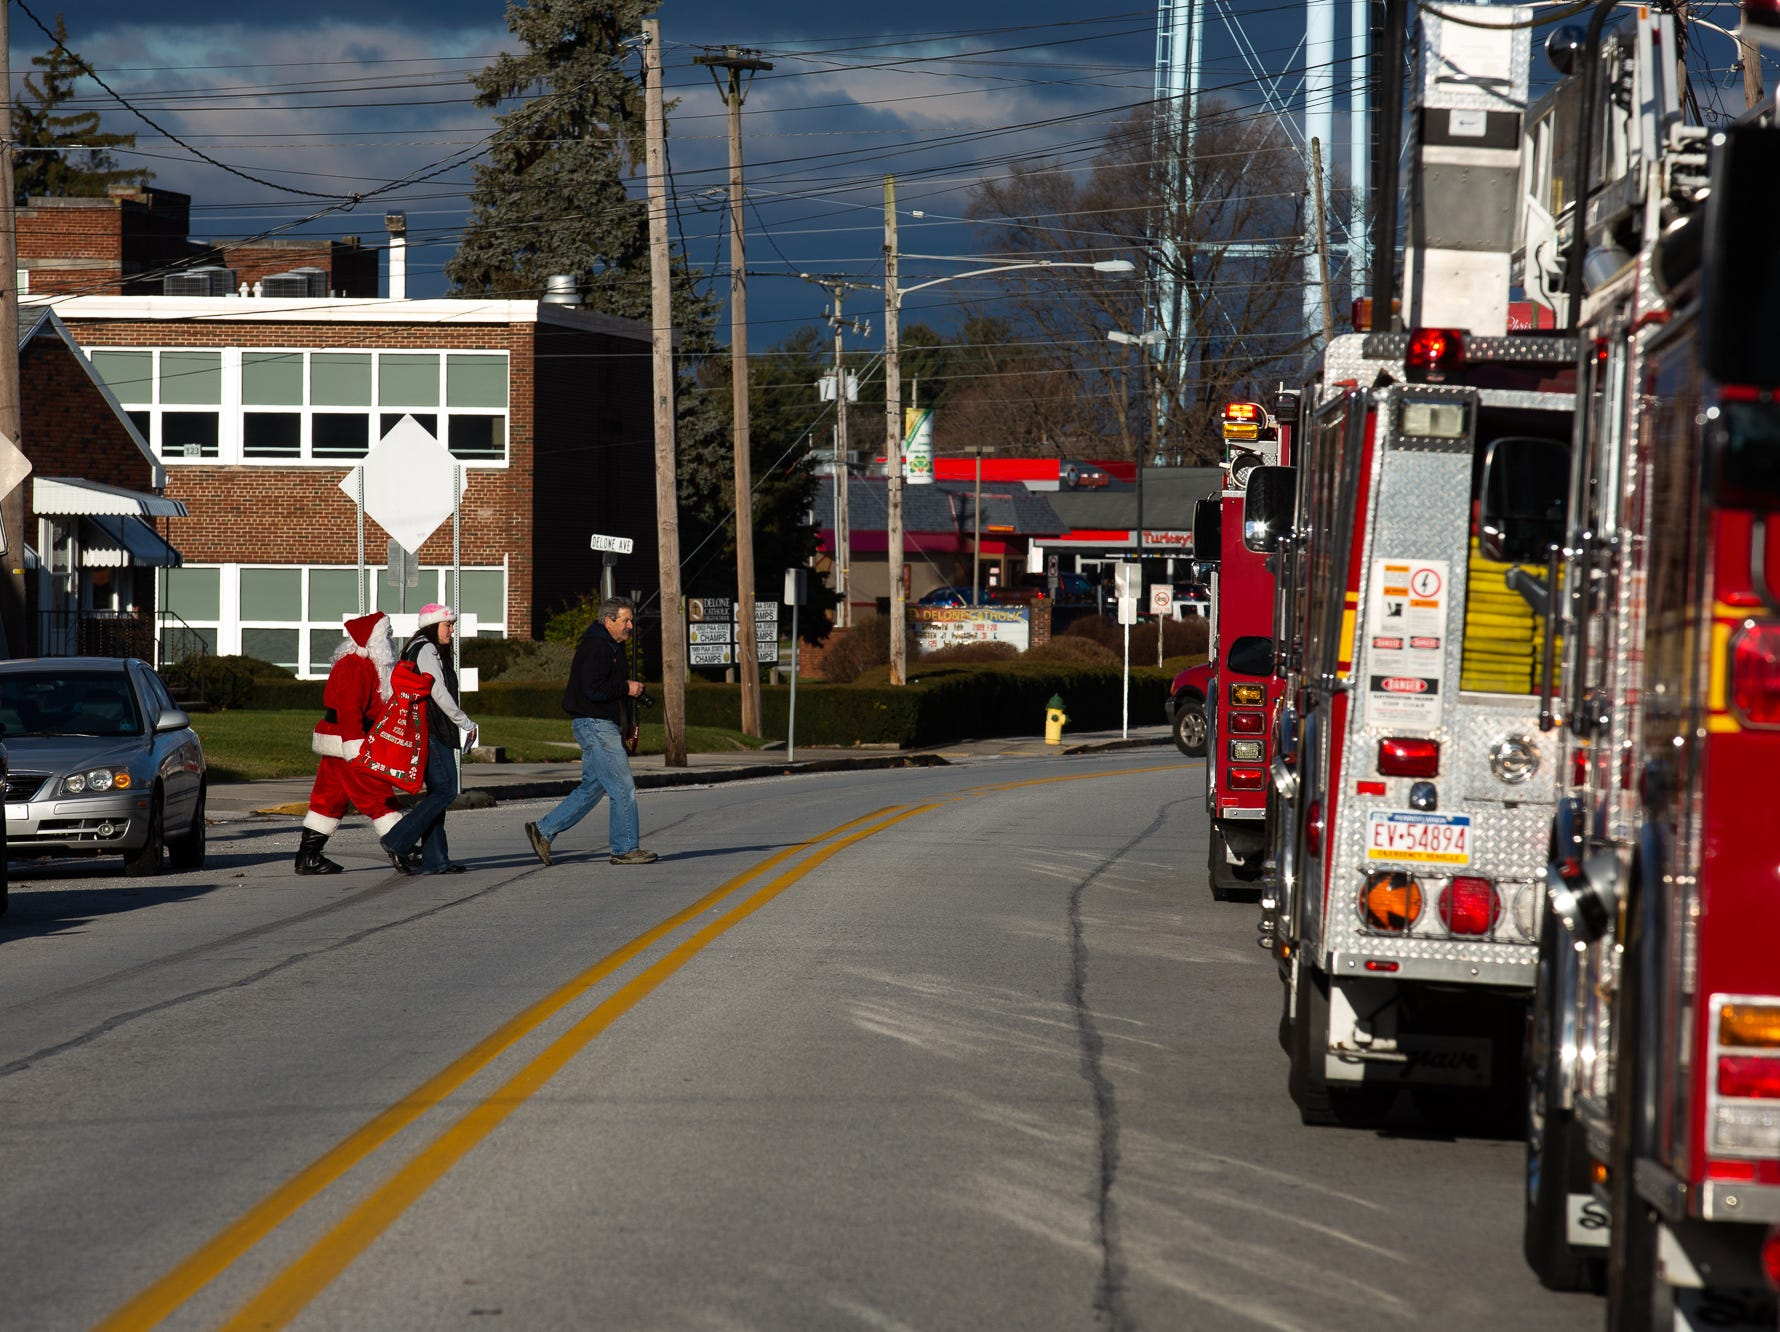 Santa, played by firefighter Wayne Reid, crosses 3rd St. during the S.A.V.E.S Project Santa, Saturday, Dec. 22, 2018, in McSherrystown Borough. The S.A.V.E.S Project Santa donated food, toys, and clothing to 12 local families in need.